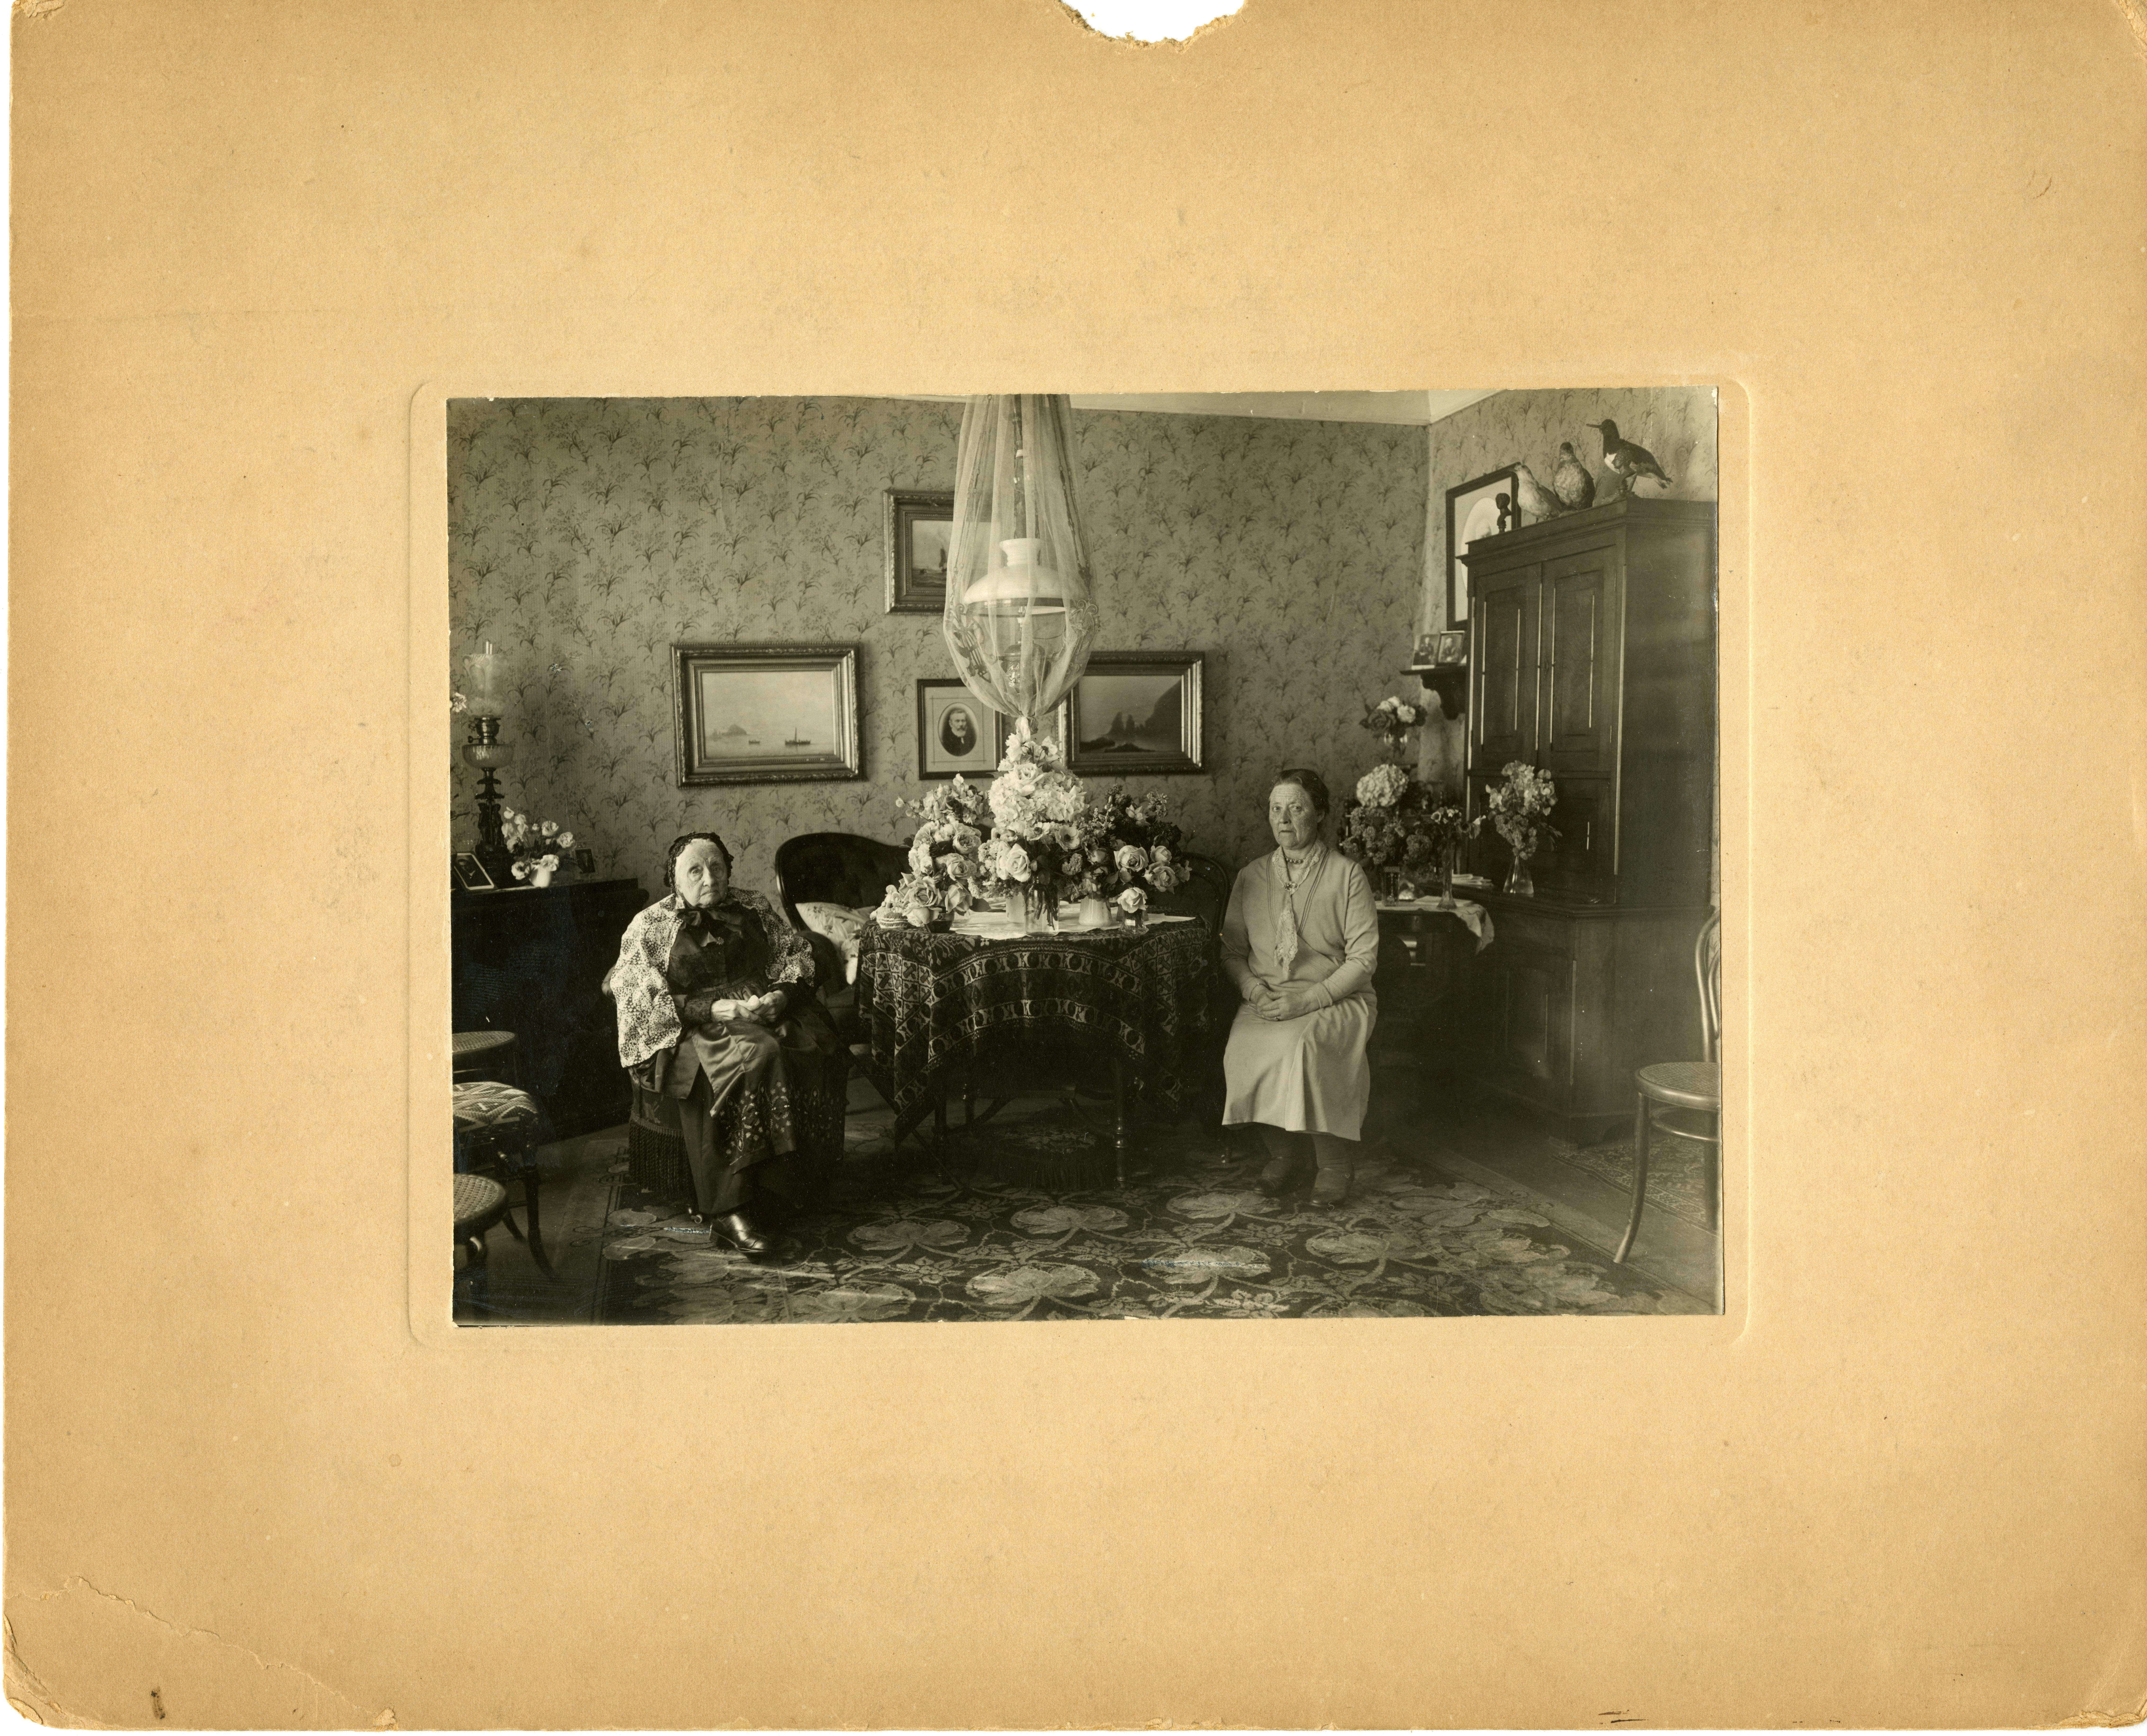 Two women sit together in nicely decorated room.